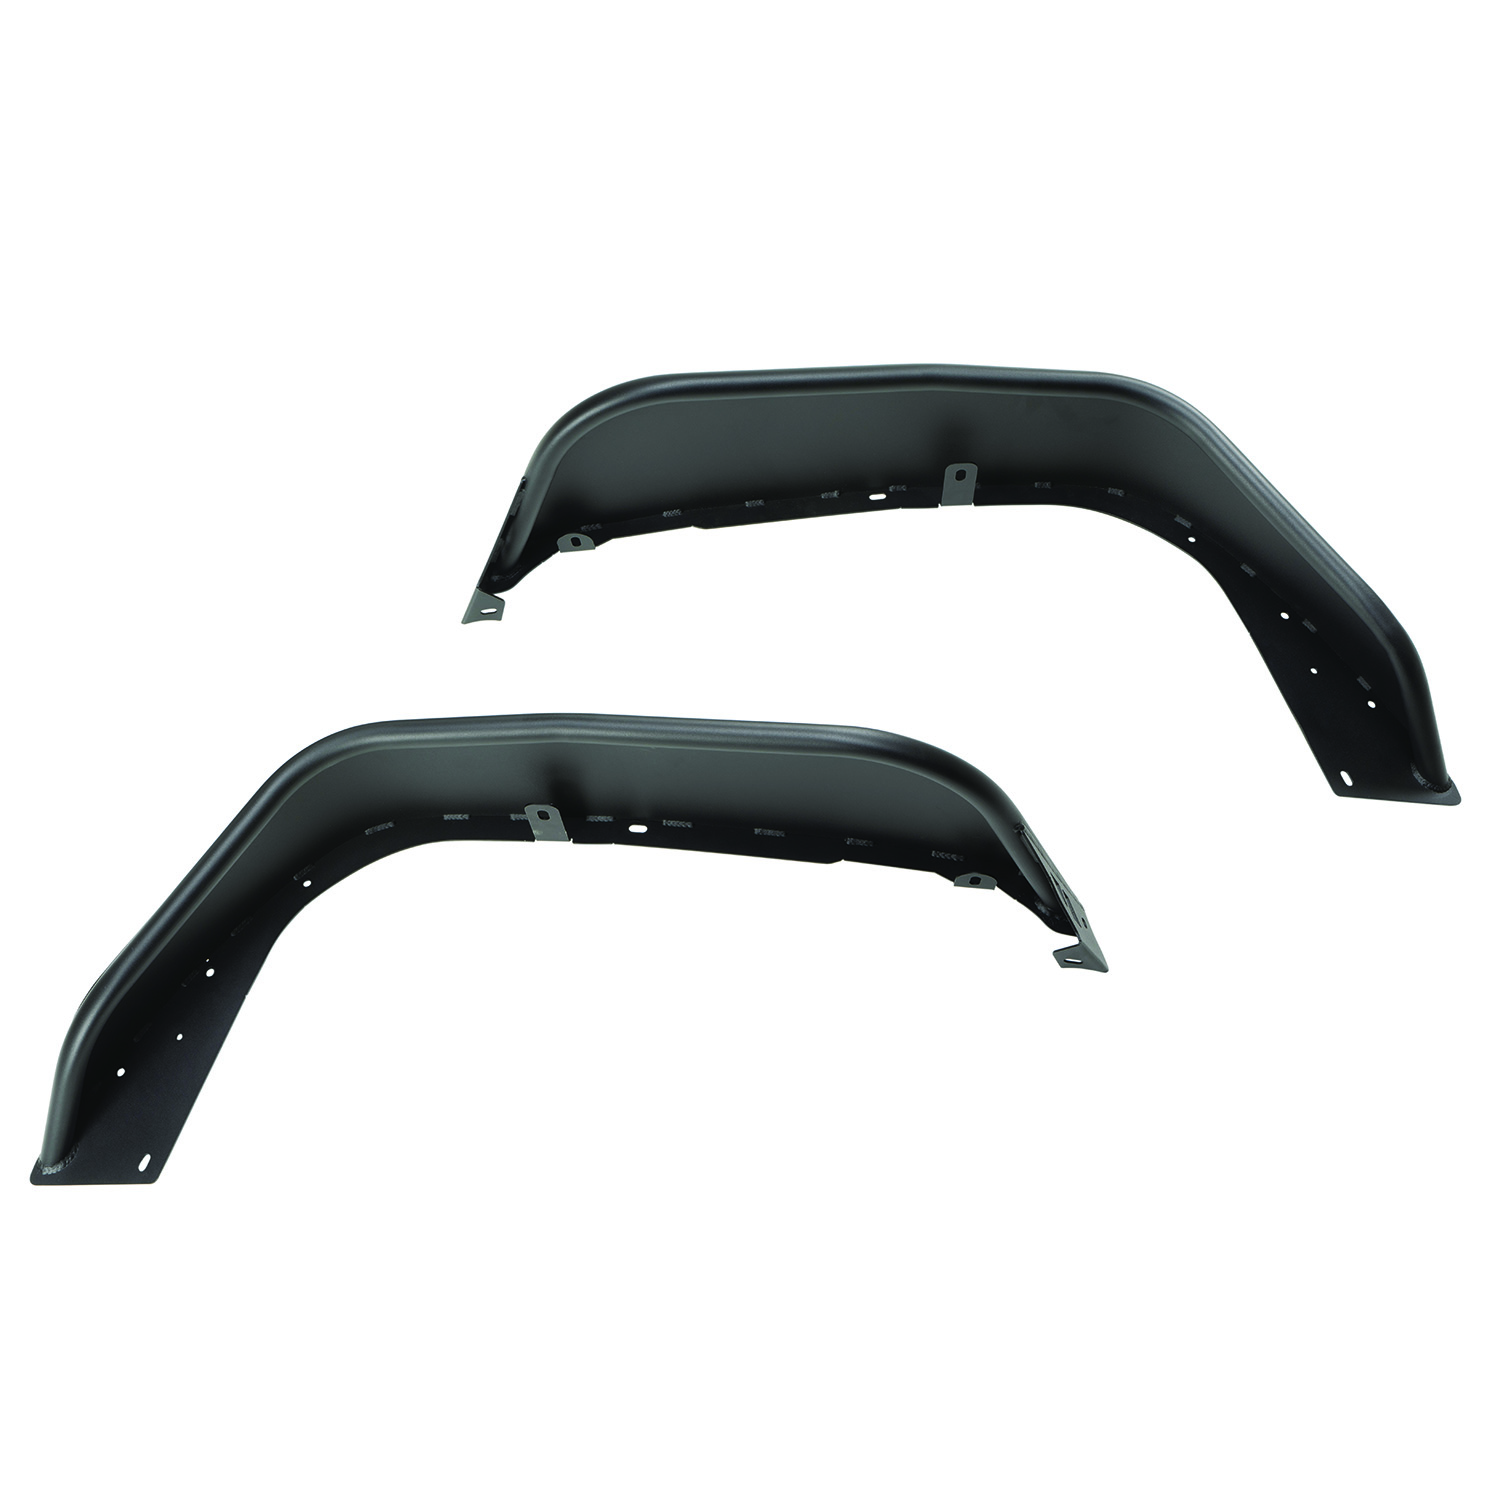 Steel Tube Fenders Front Pair Black For 2018 To 2020 Jeep Wrangler JL 11615.71